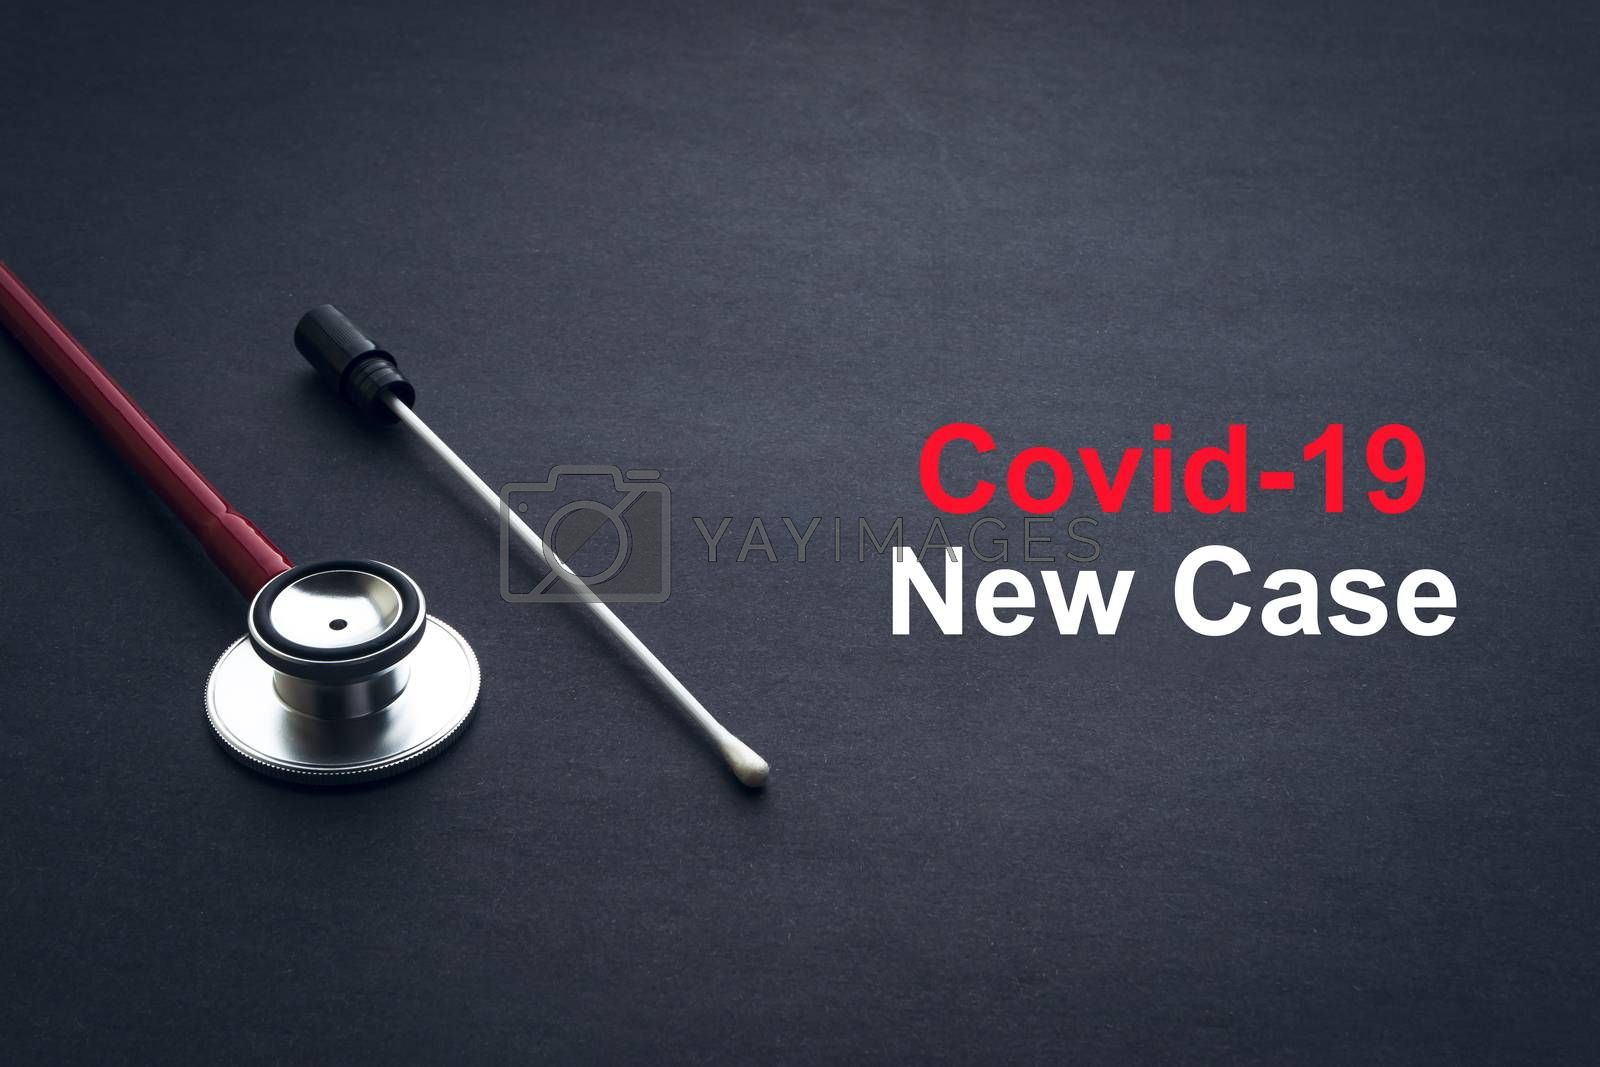 COVID-19 or CORONAVIRUS NEW CASE text with stethoscope and medical swab on black background. Covid-19 or Coronavirus concept.